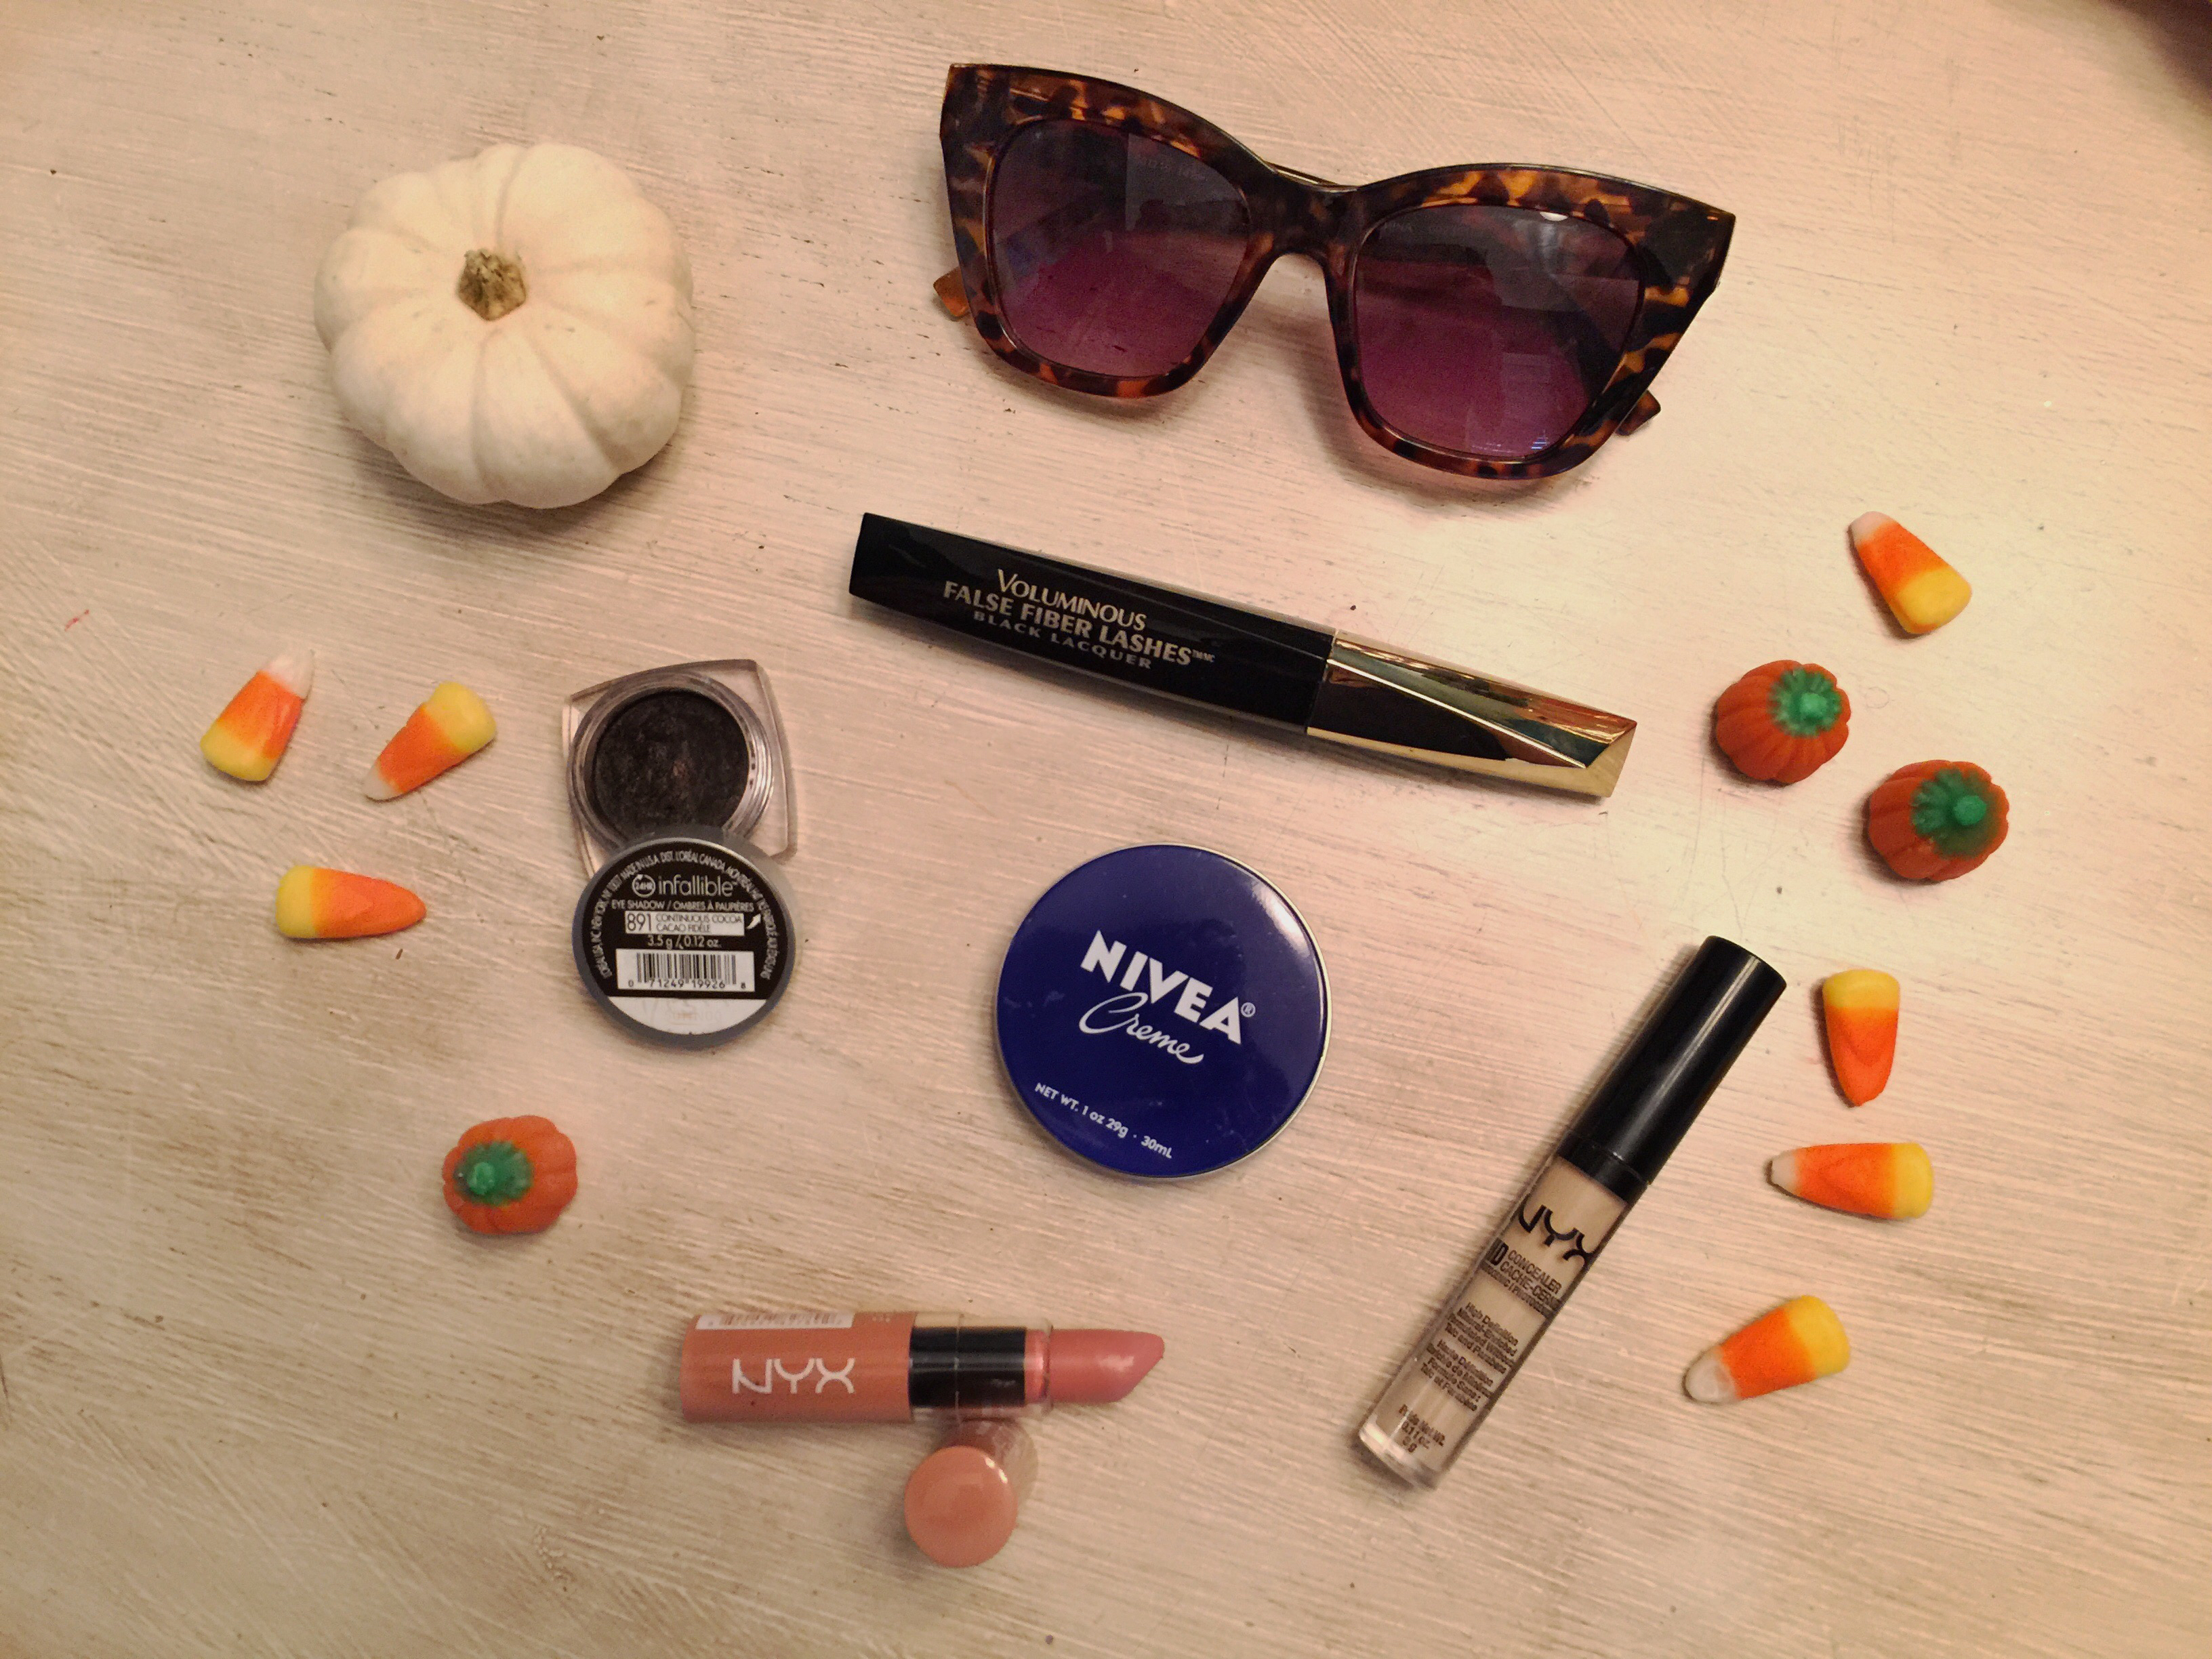 JennySue Makeup blog by Jennifer Duvall, beauty blogger, pinterest beauty products under $10, best budget makeup, Forever 21 sunglasses, Loreal best makeup and mascara, NYX butter lipstick, NYX concealer